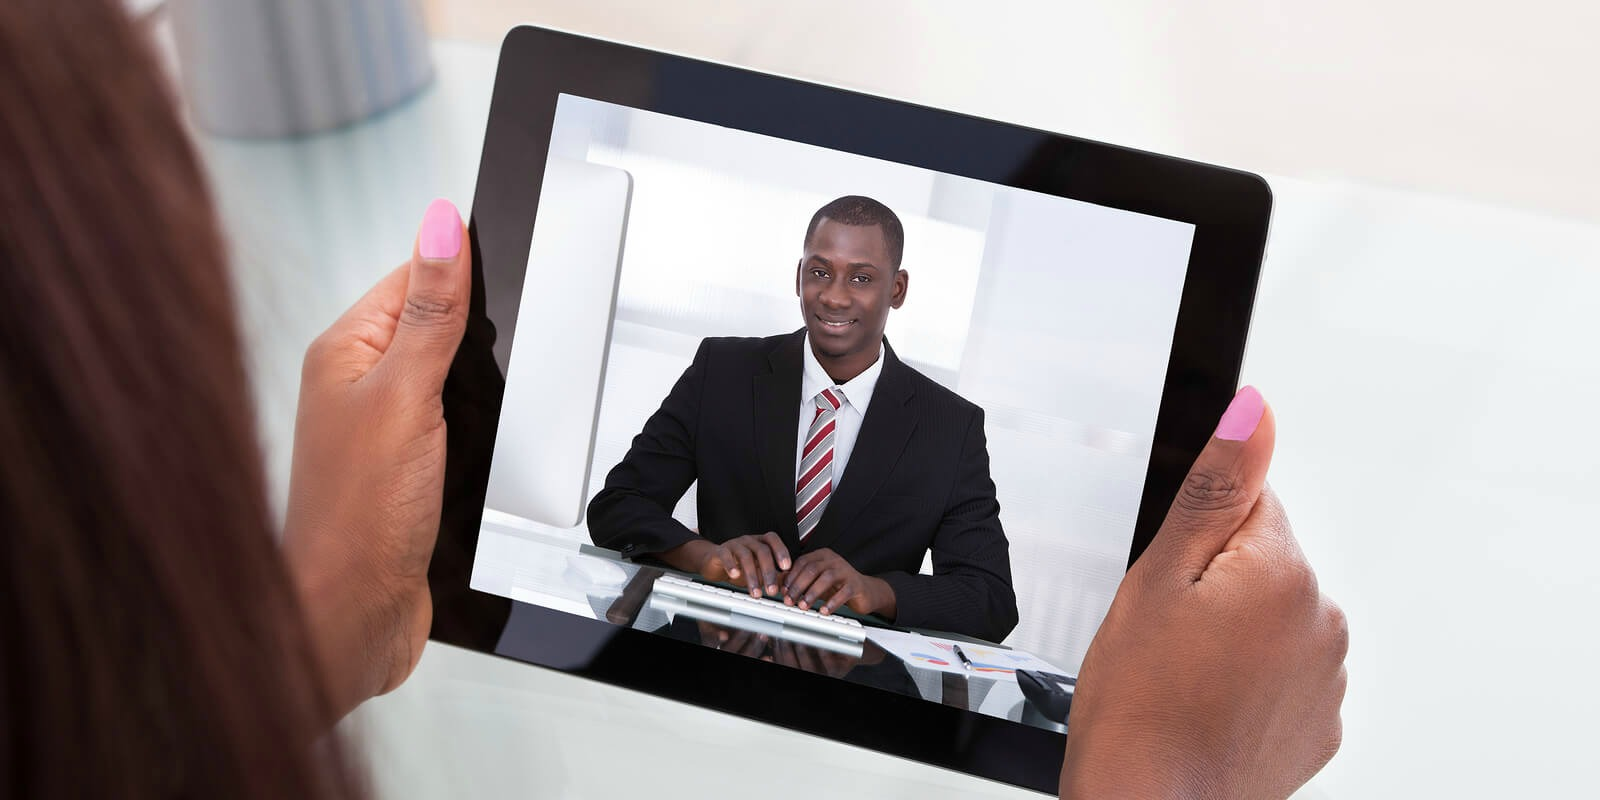 Telecommuting employee who is videoconferencing